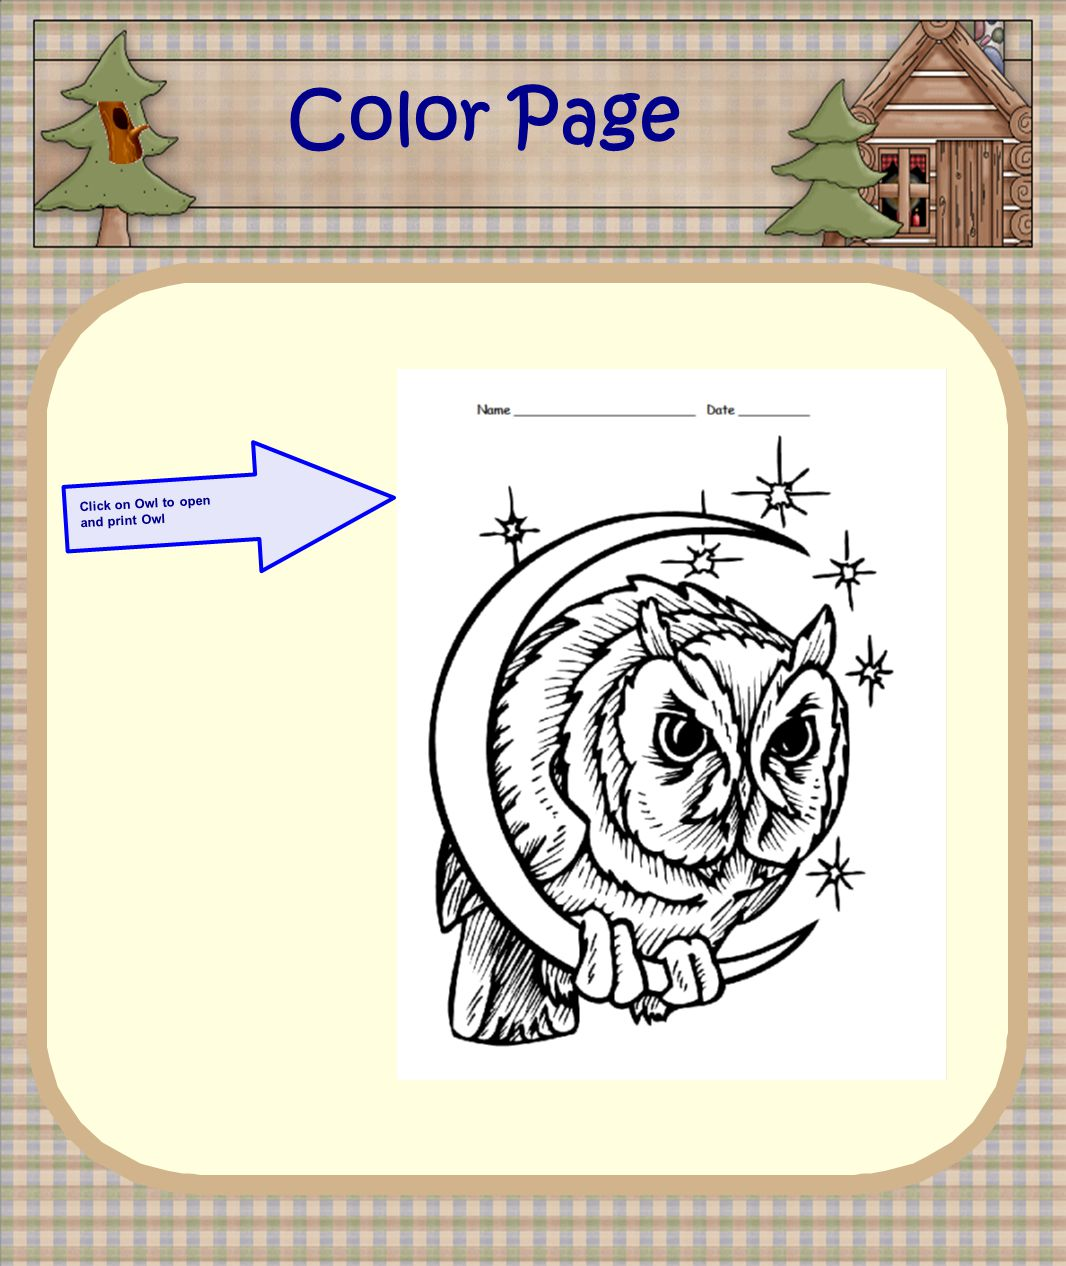 Click on Owl to open and print Owl Color Page